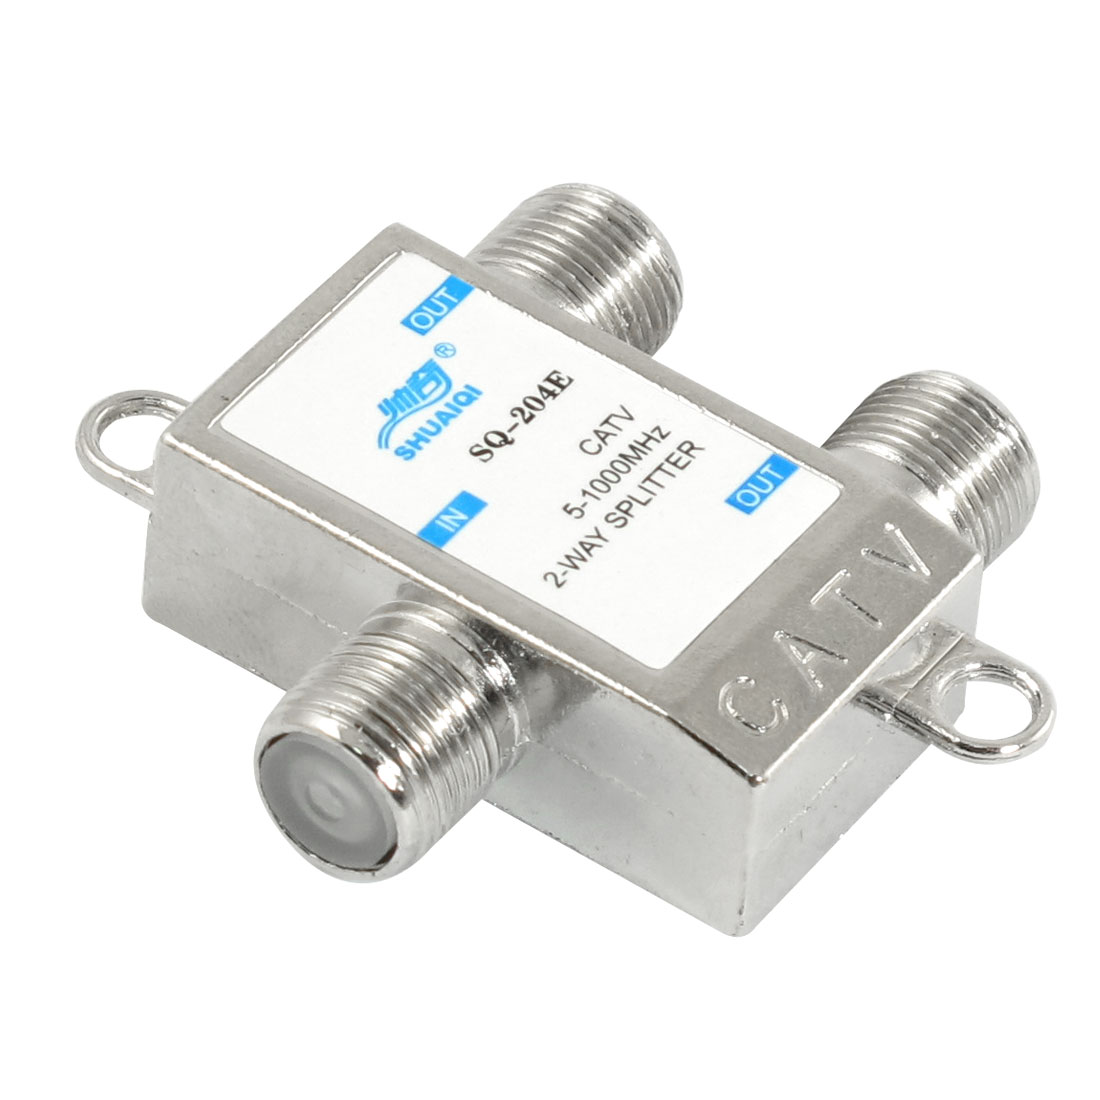 5-1000MHz 1 In 2 Out TV CATV Signal Coupler 2 Way Splitter